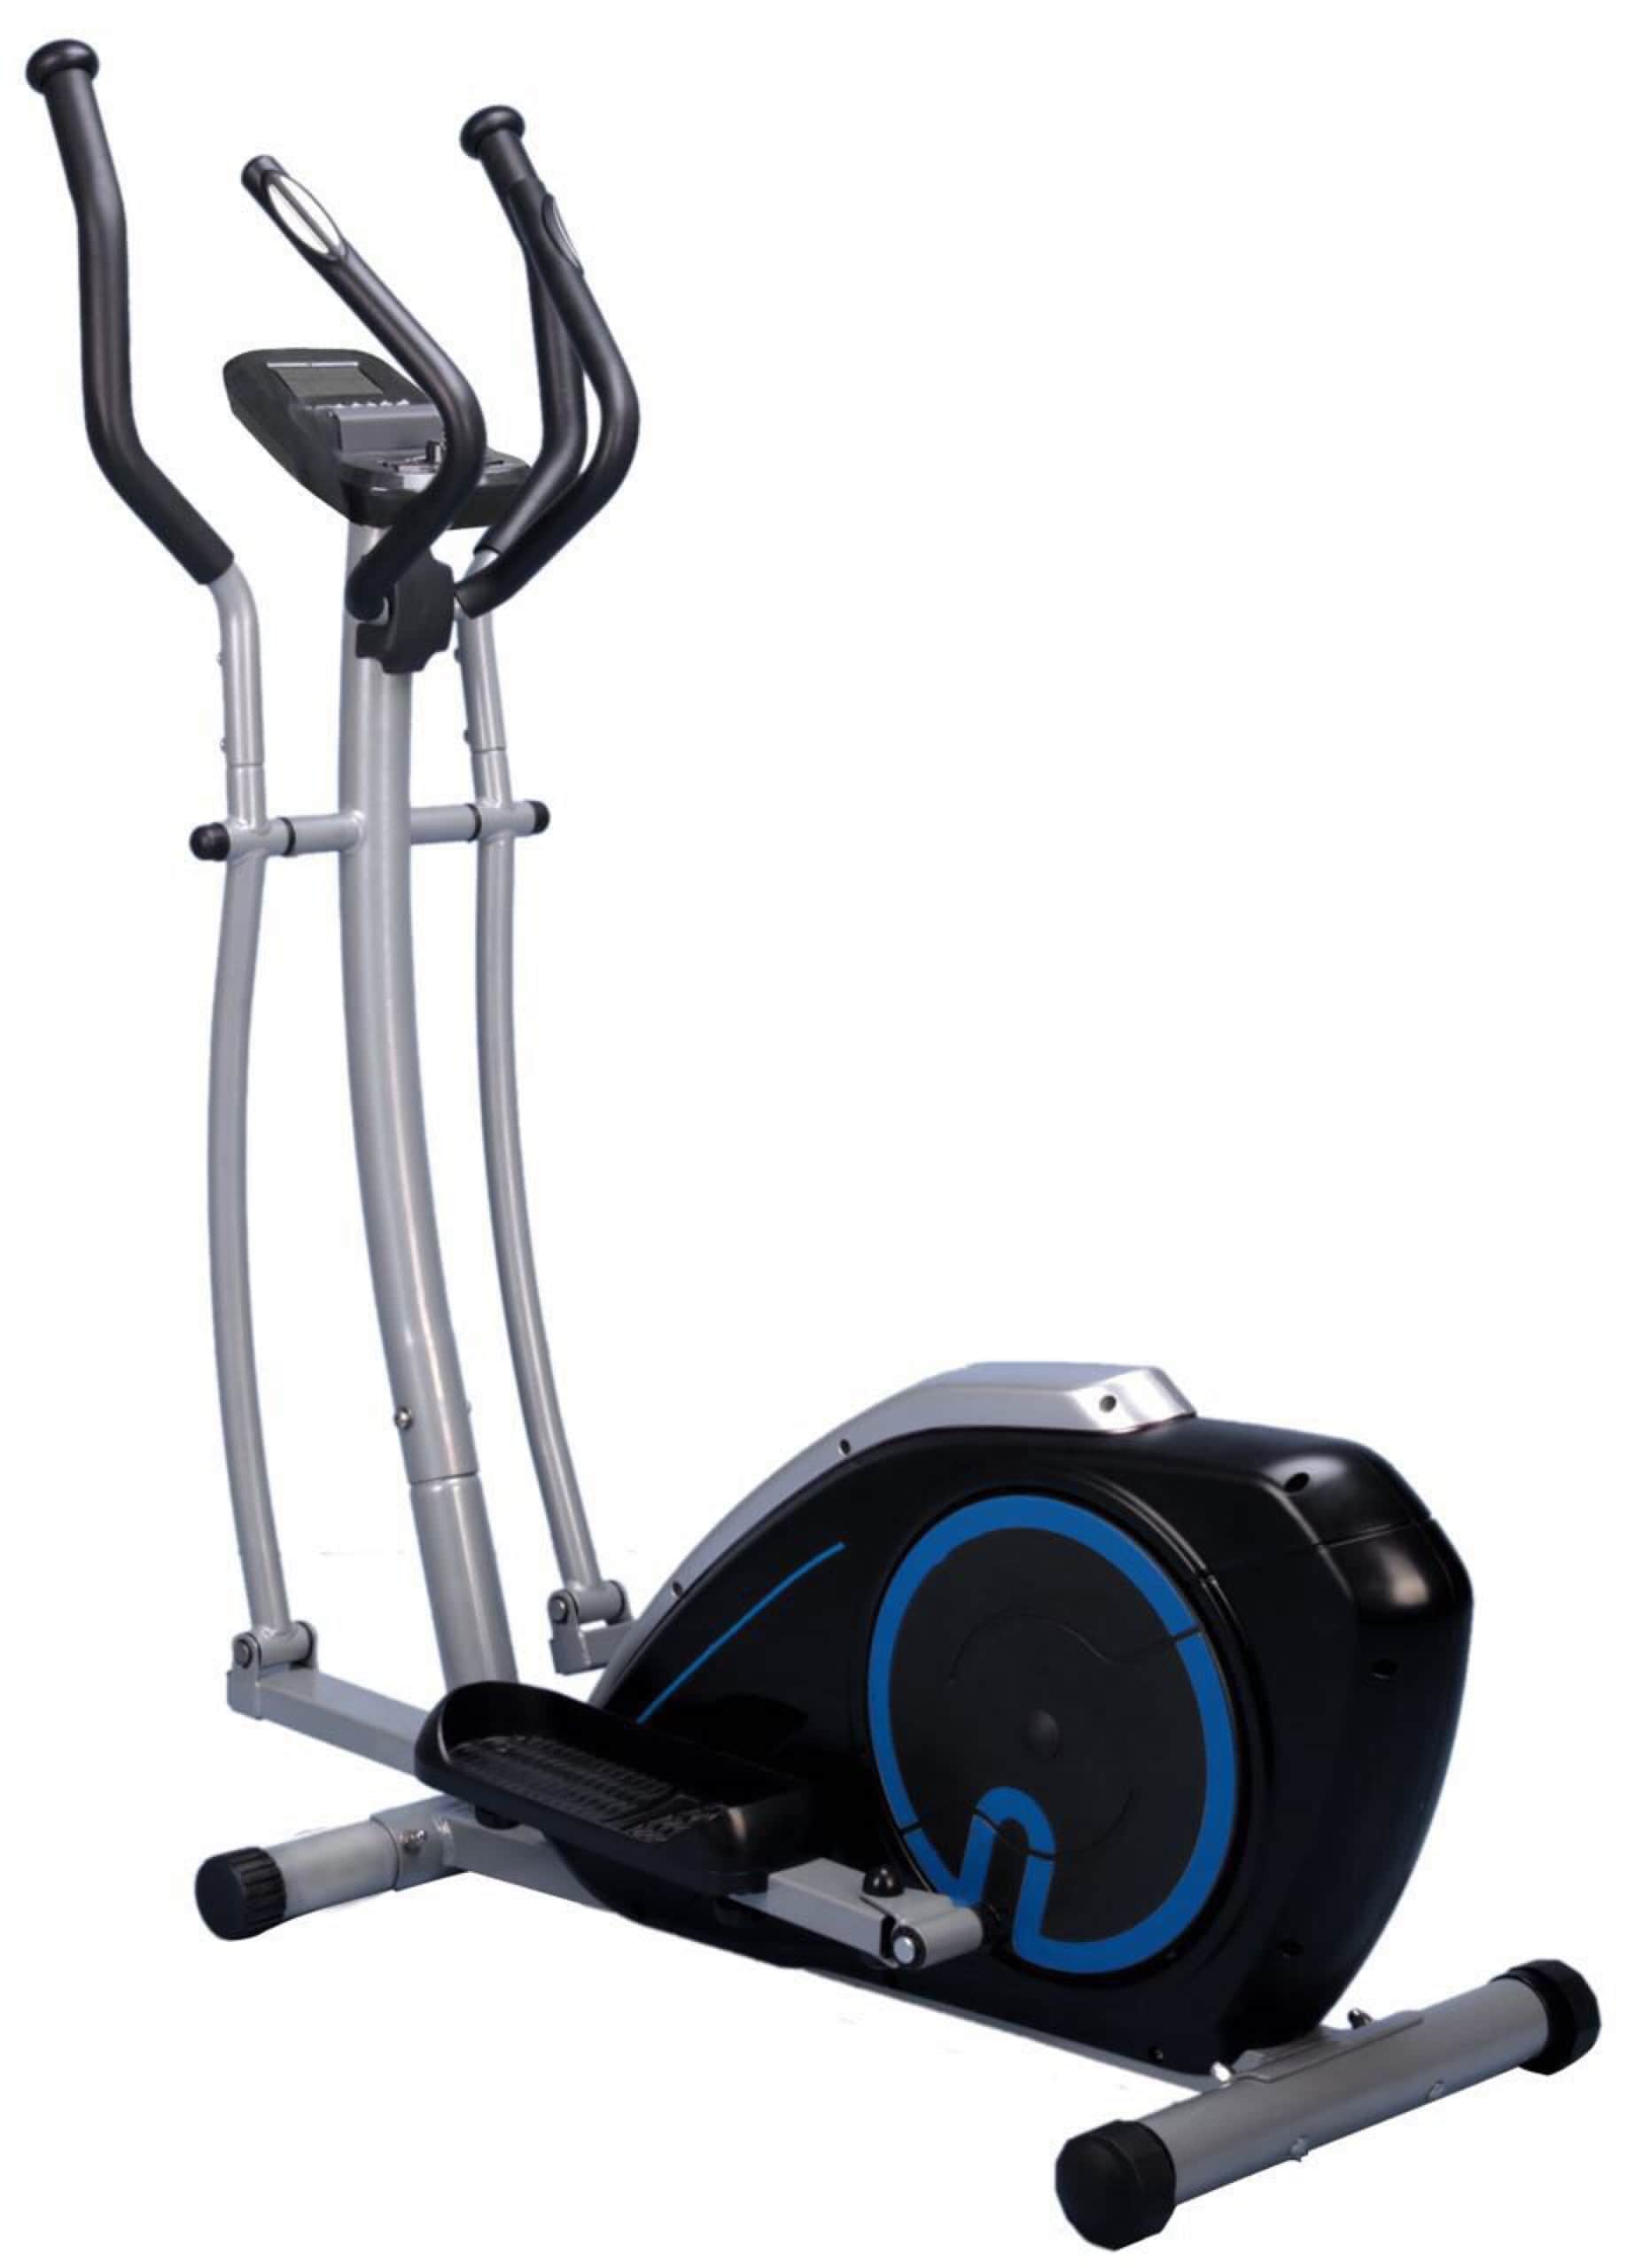 TurboFitness TF 115 Elliptical